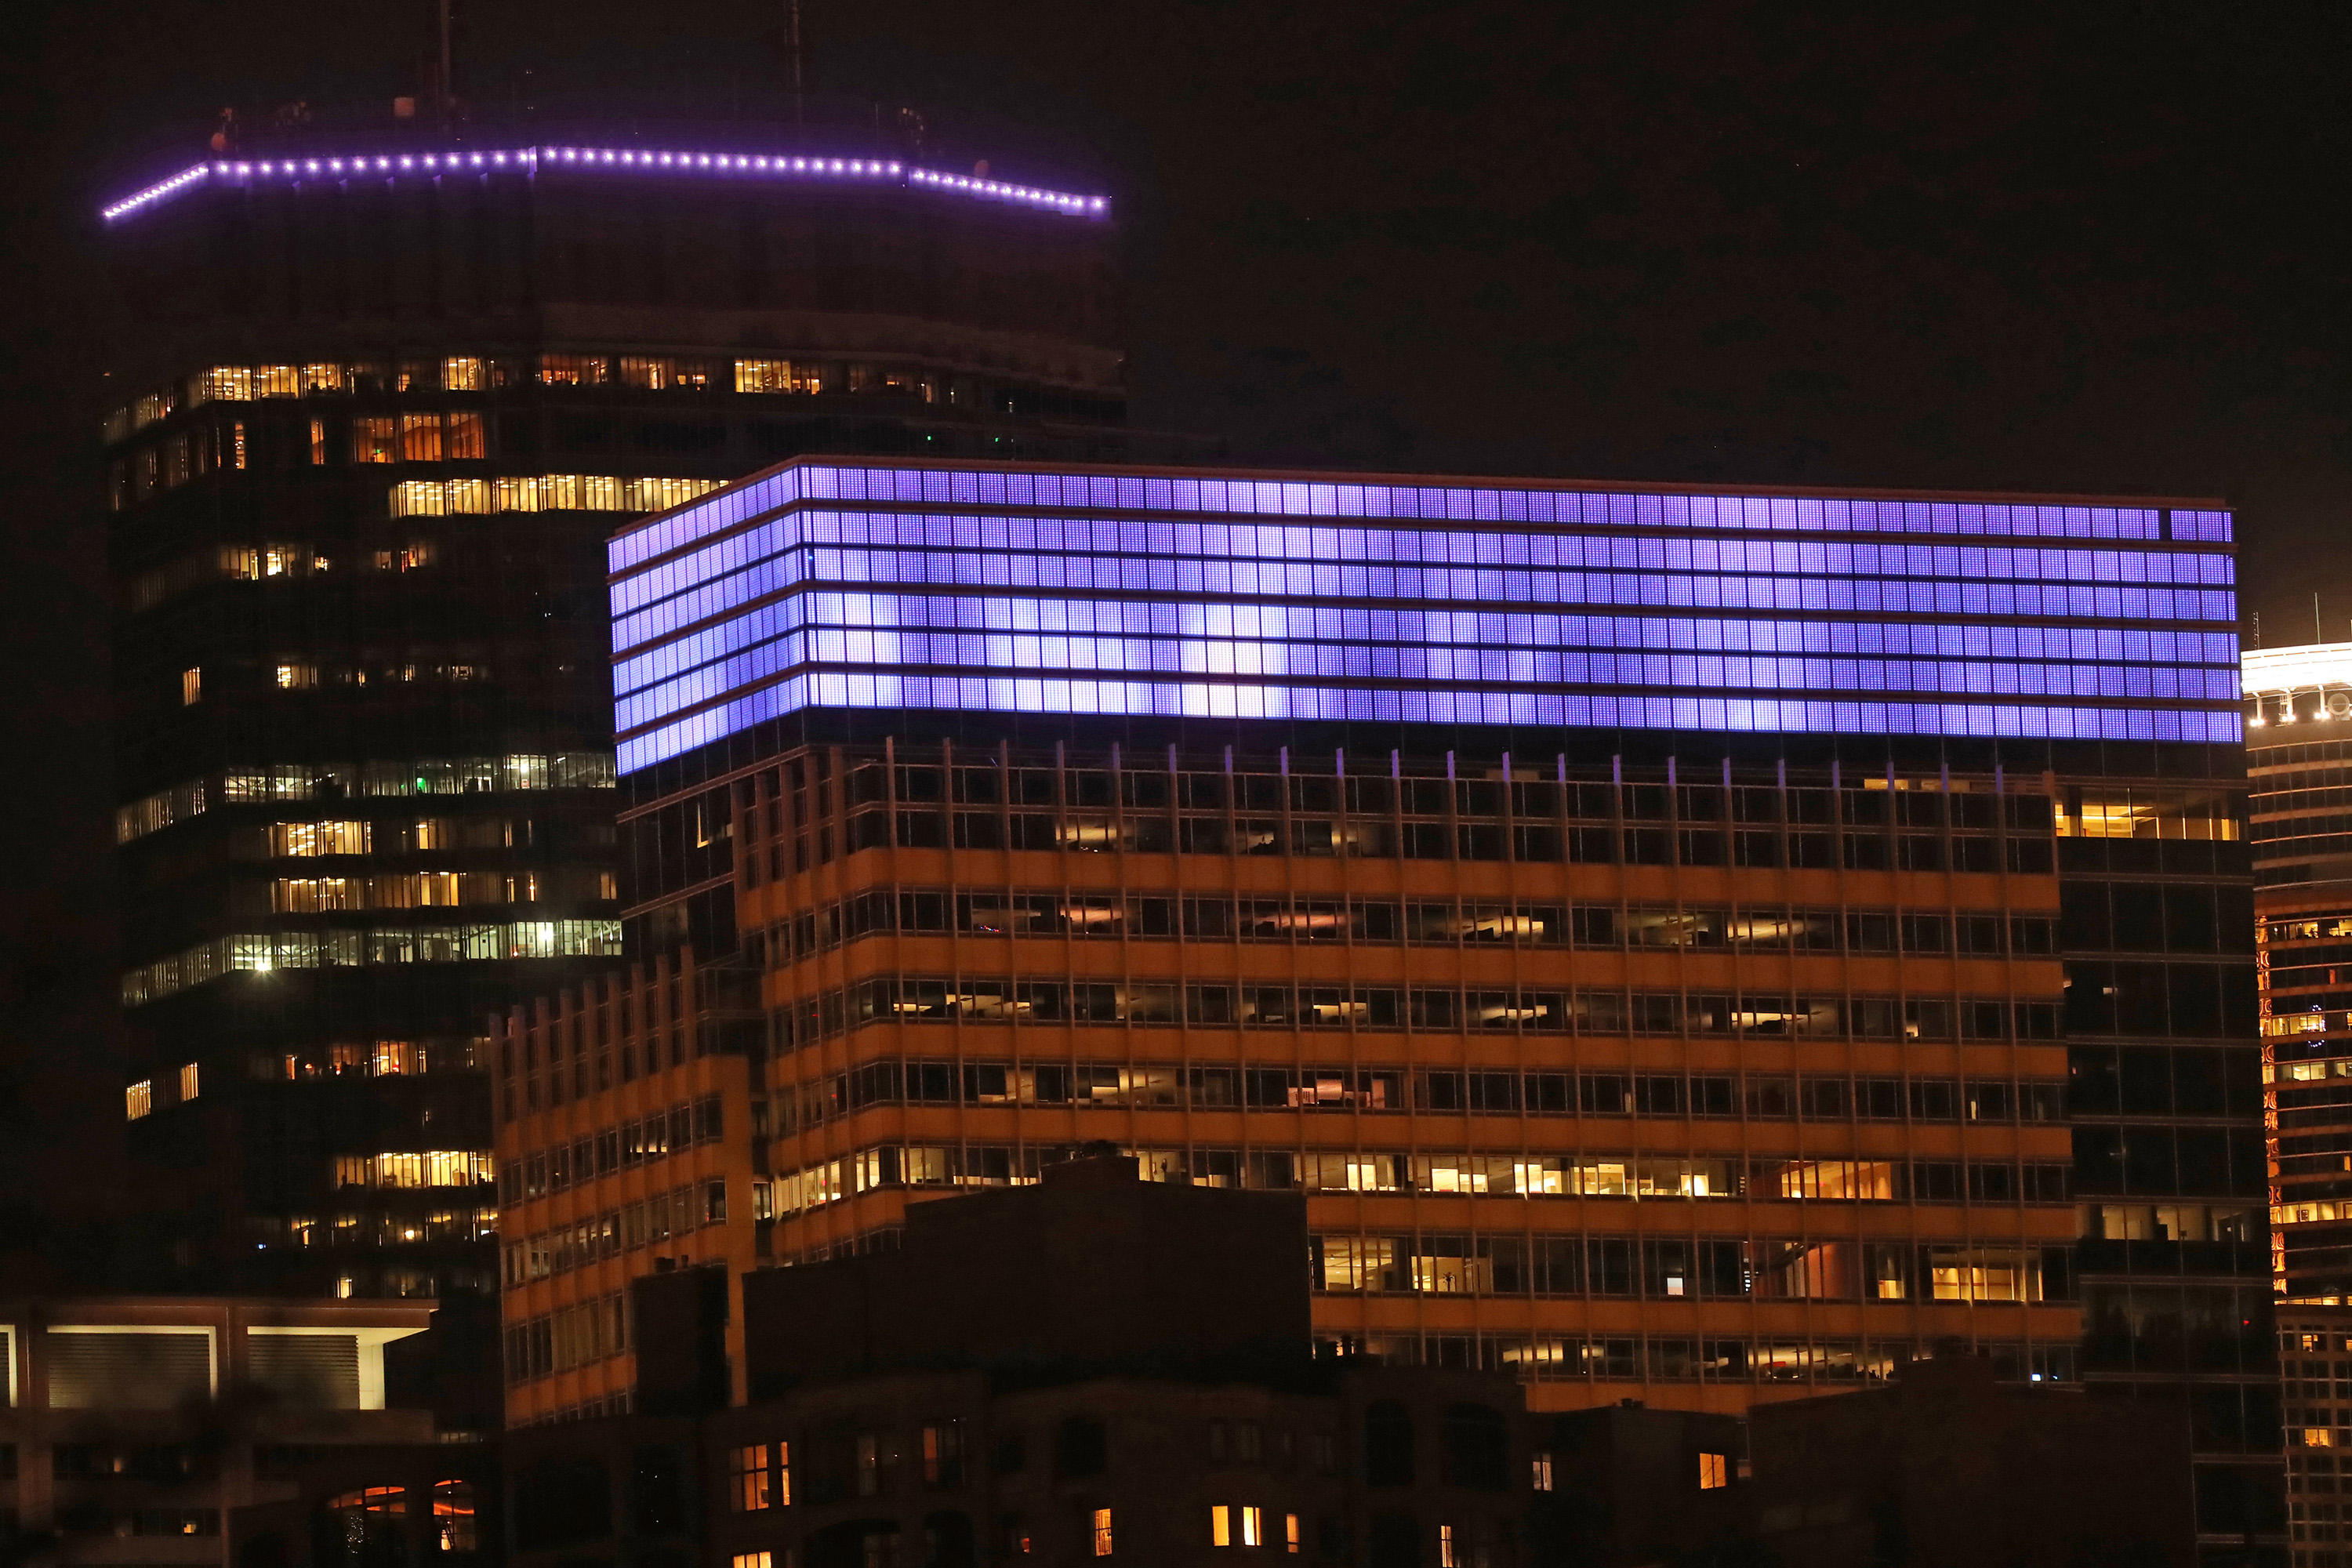 Target's headquarters and the IDS Center were lit purple to mark the one-year anniversary of Prince's passing on April 20, 2017.